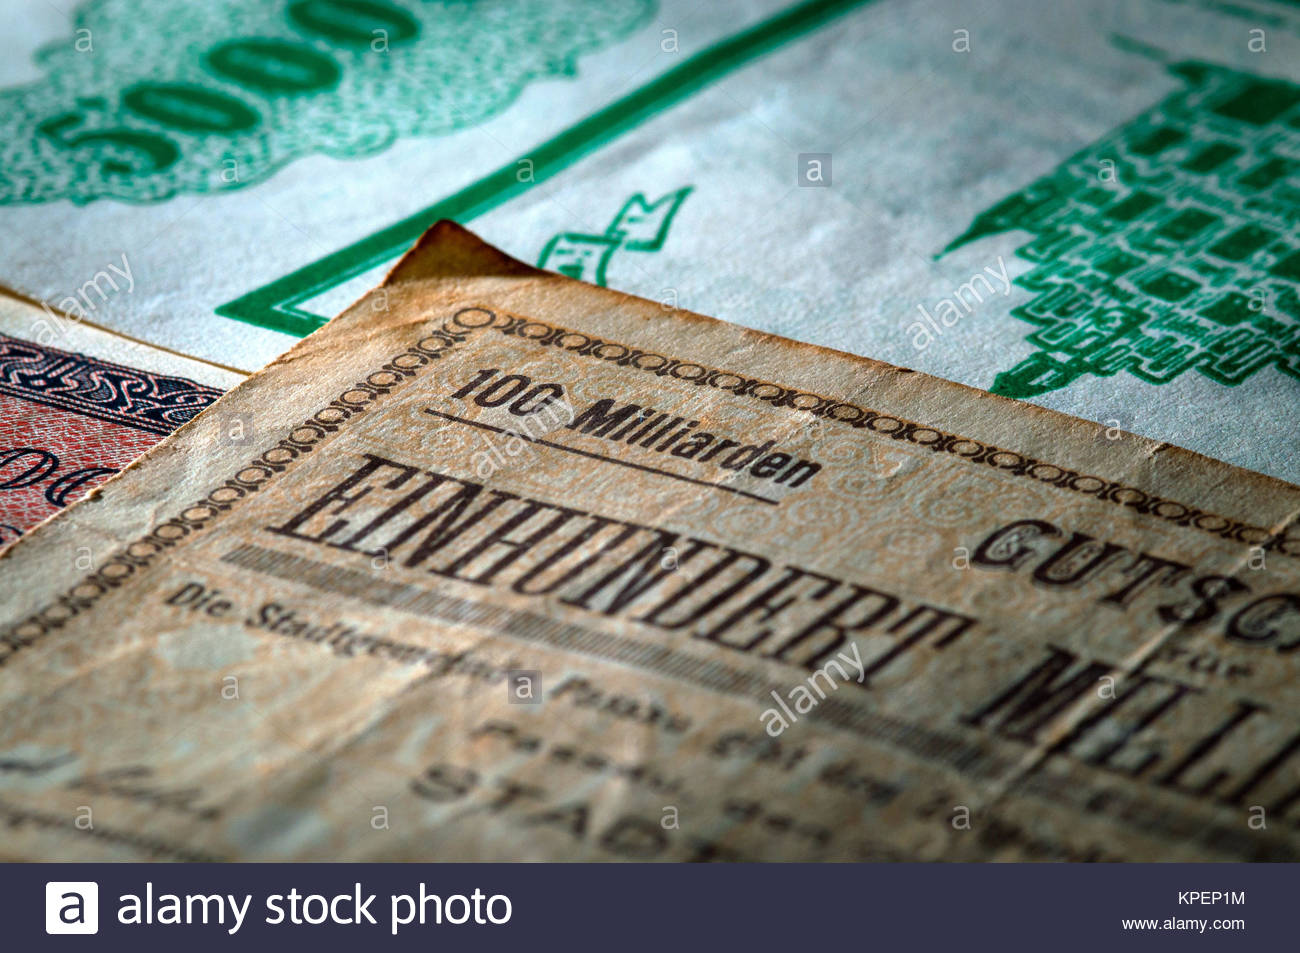 An analysis of the issue of hyperinflation in germany after world war one